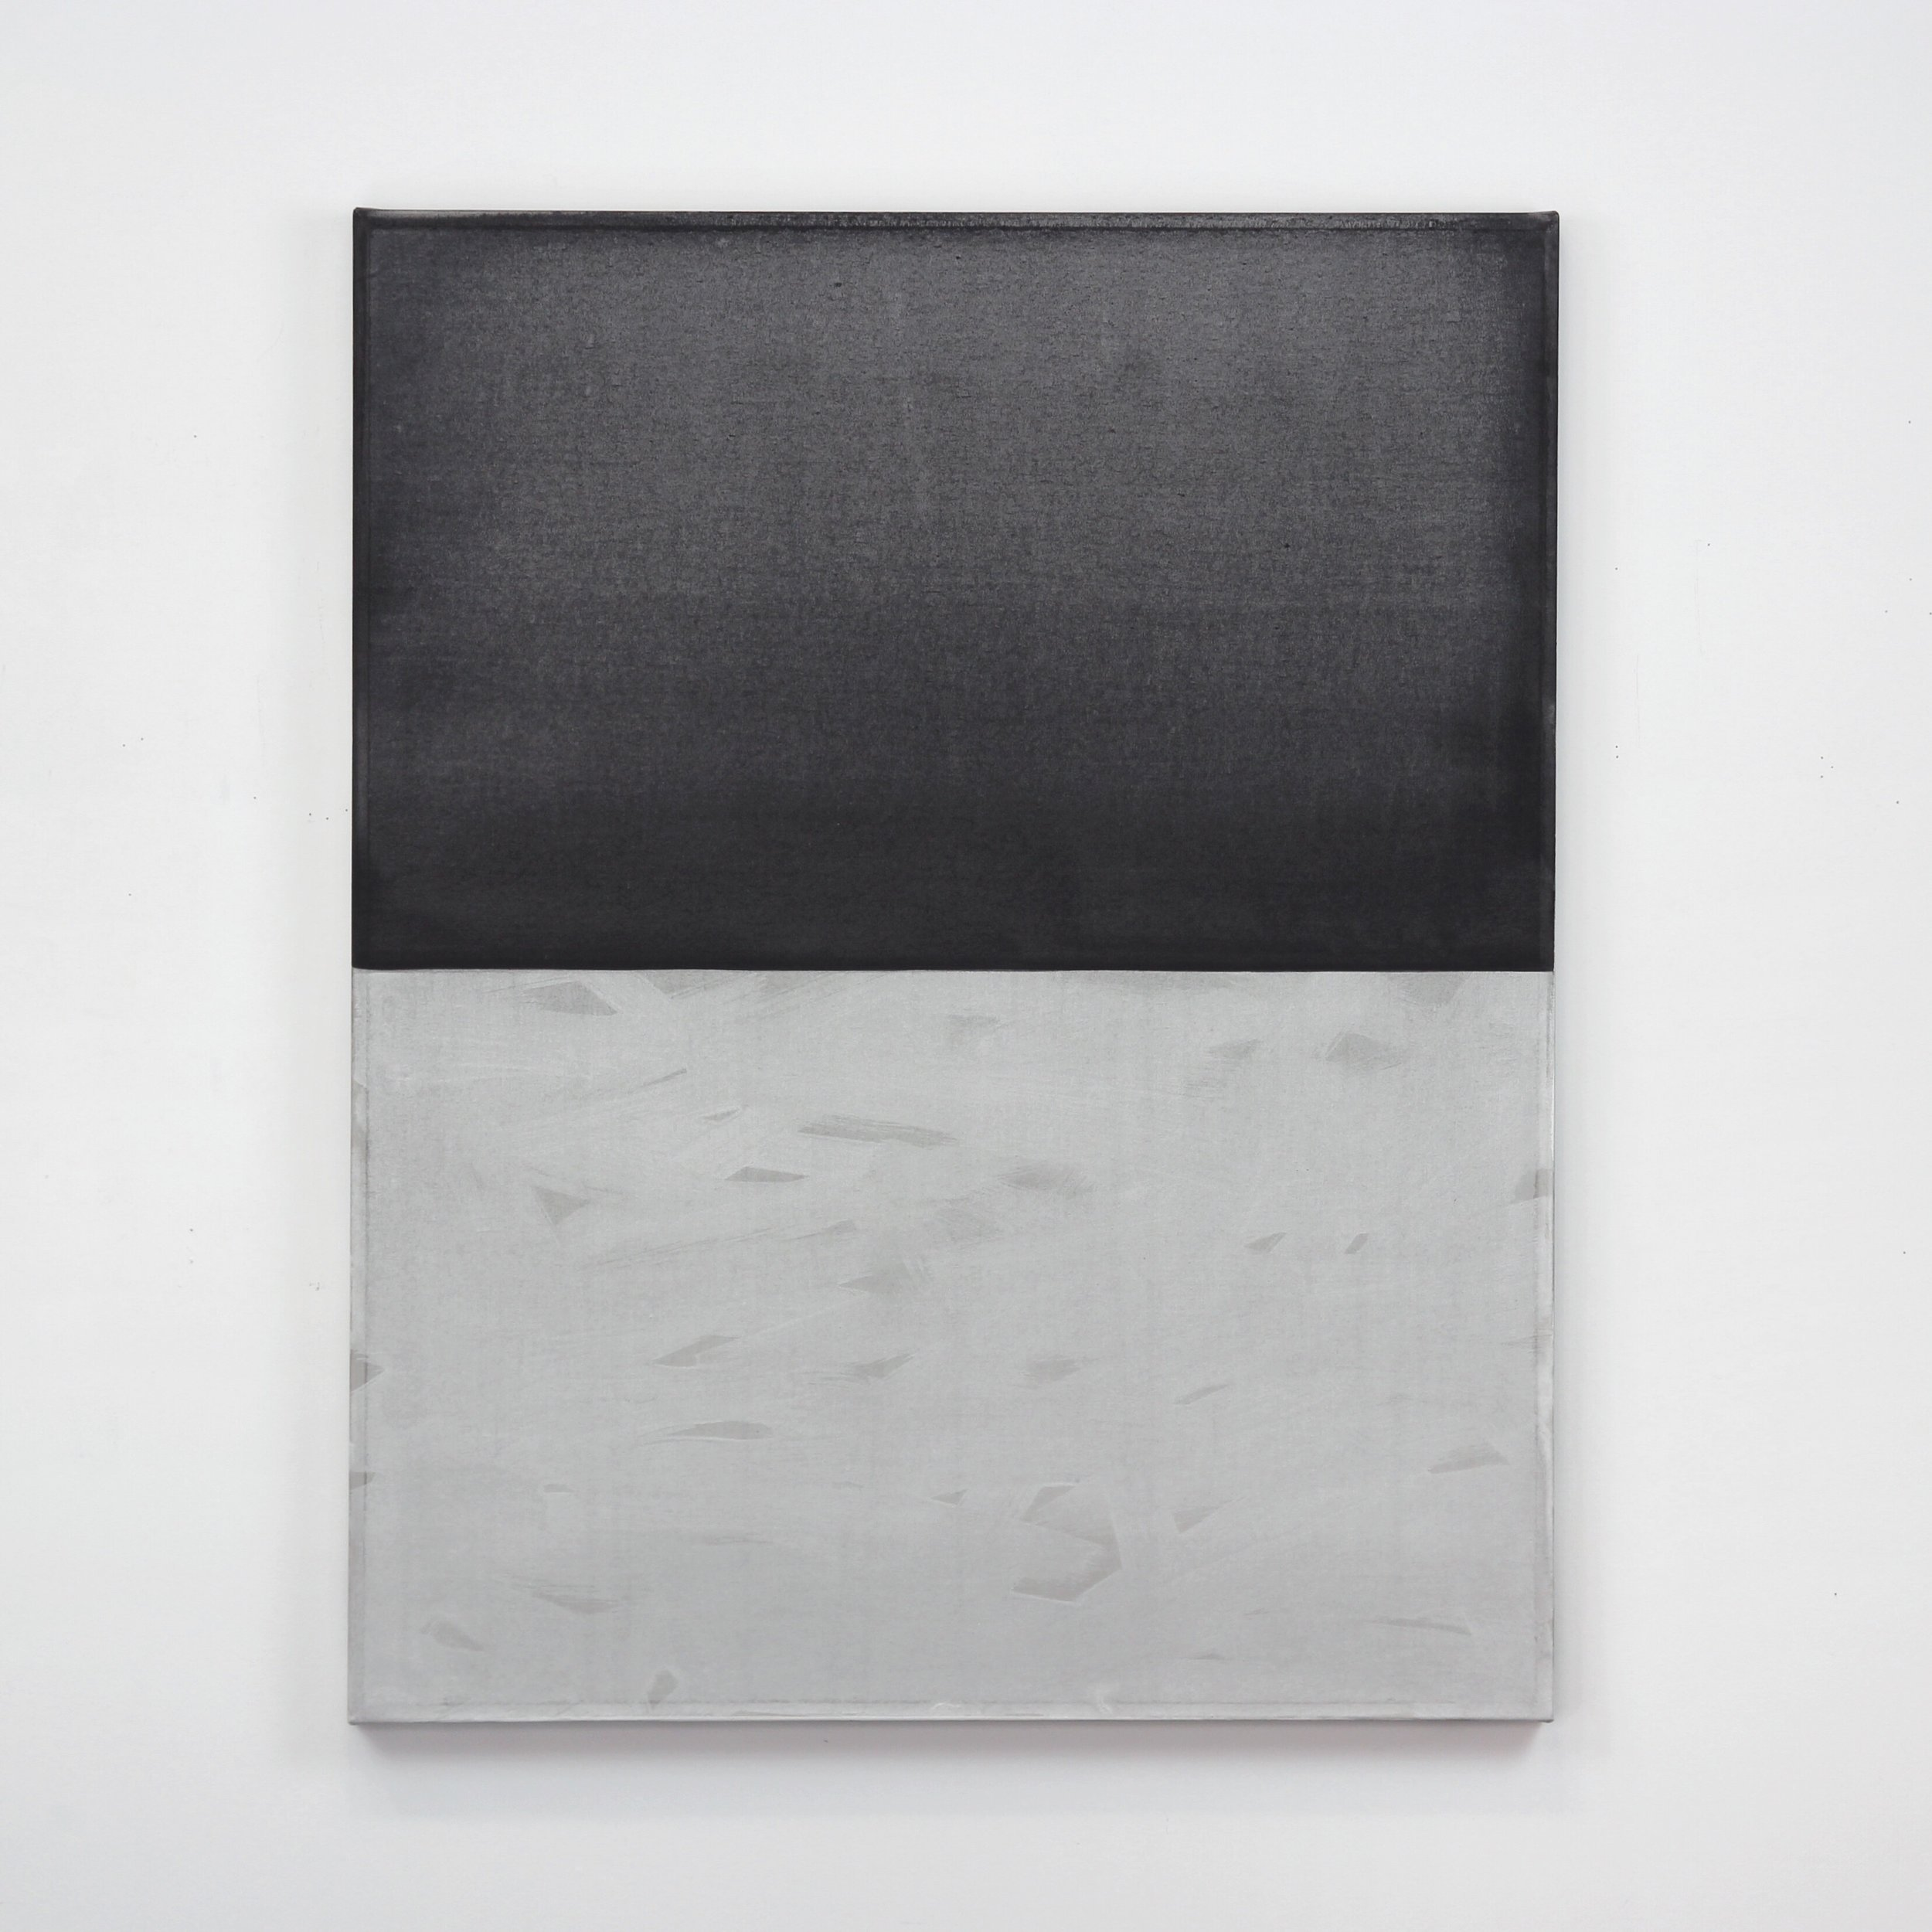 Moon Shadow  Black gesso and acrylic on canvas 35 x 28 inches 88.9 x 71.12 cm 2019